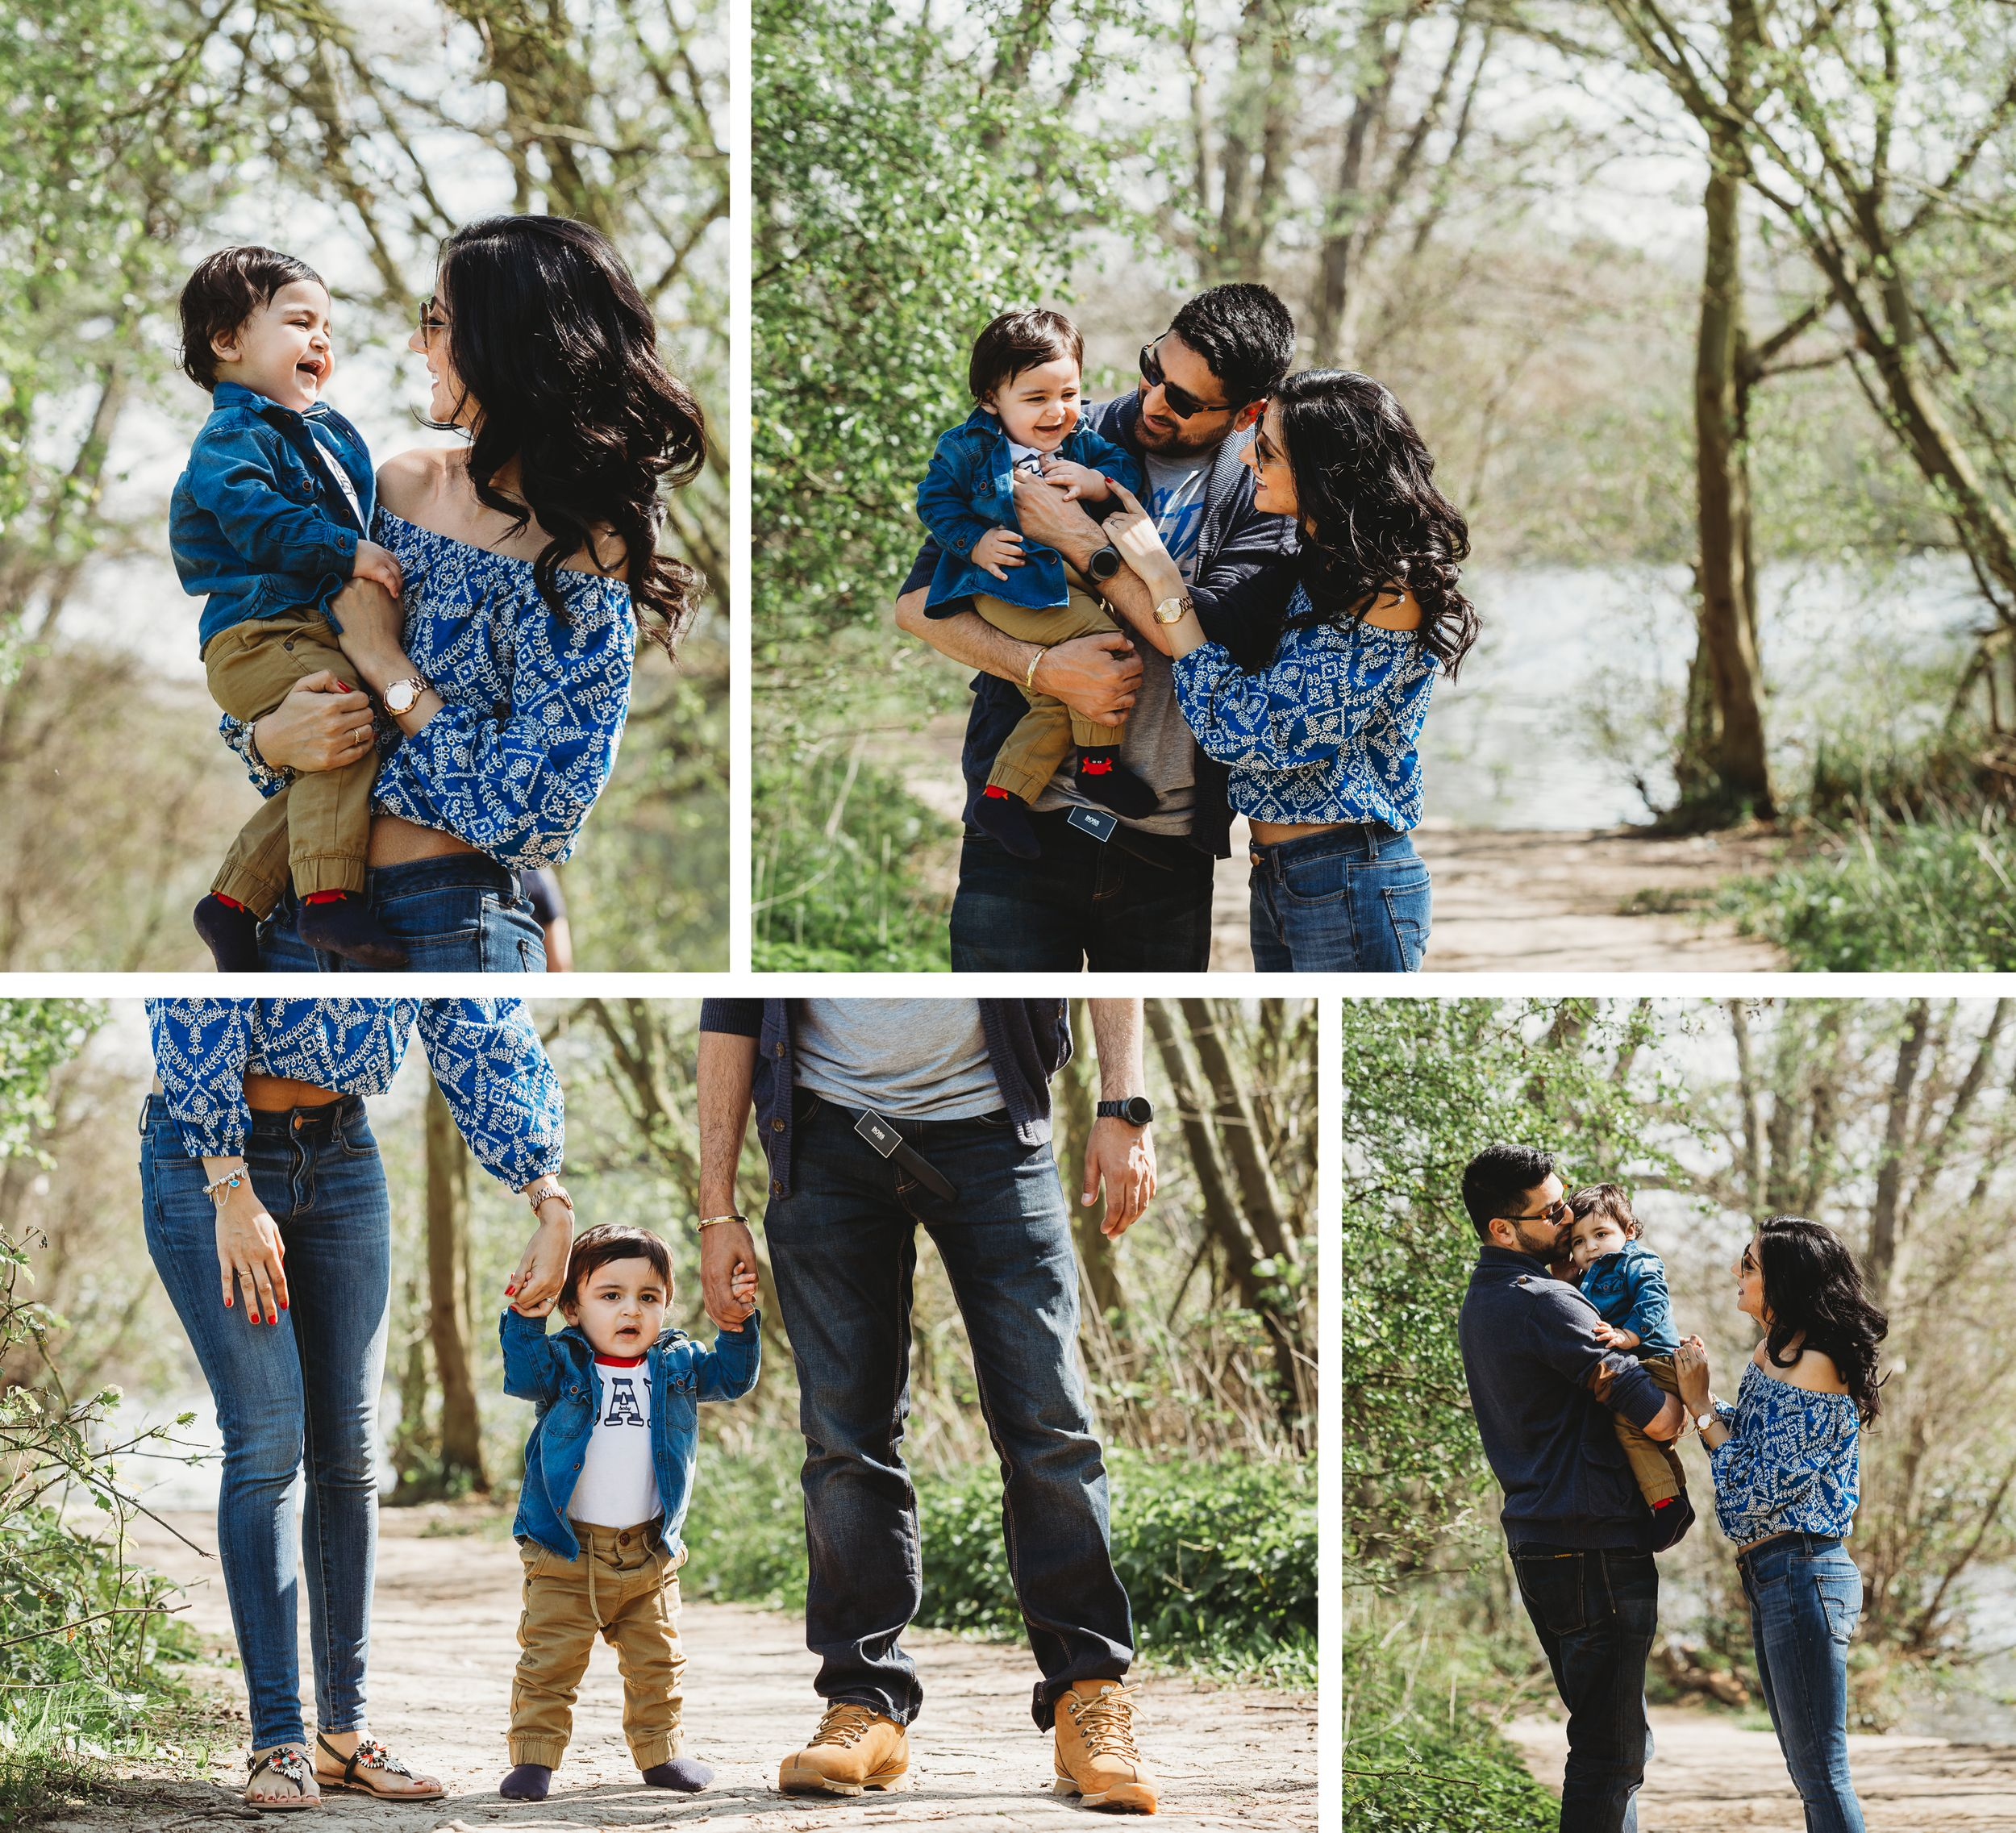 what to wear to family photo session outdoors